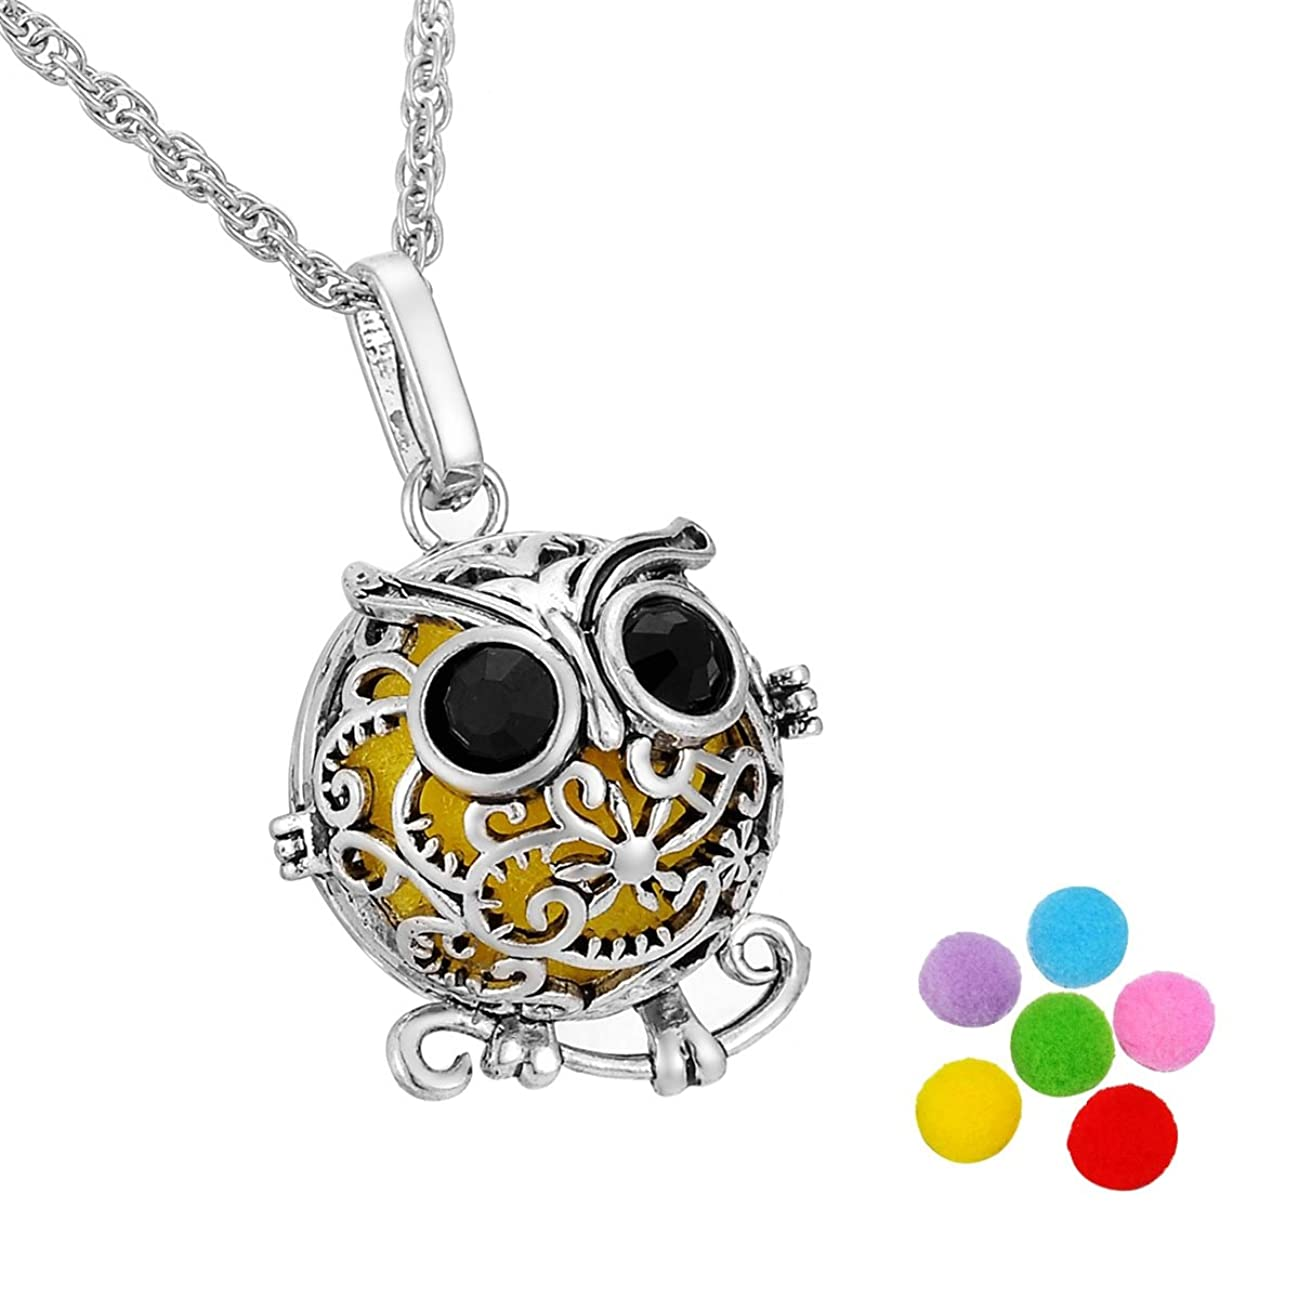 HooAMI Aromatherapy Essential Oil Diffuser Necklace Owl Locket Pendant with 6 Multi-Colored Refill Pads